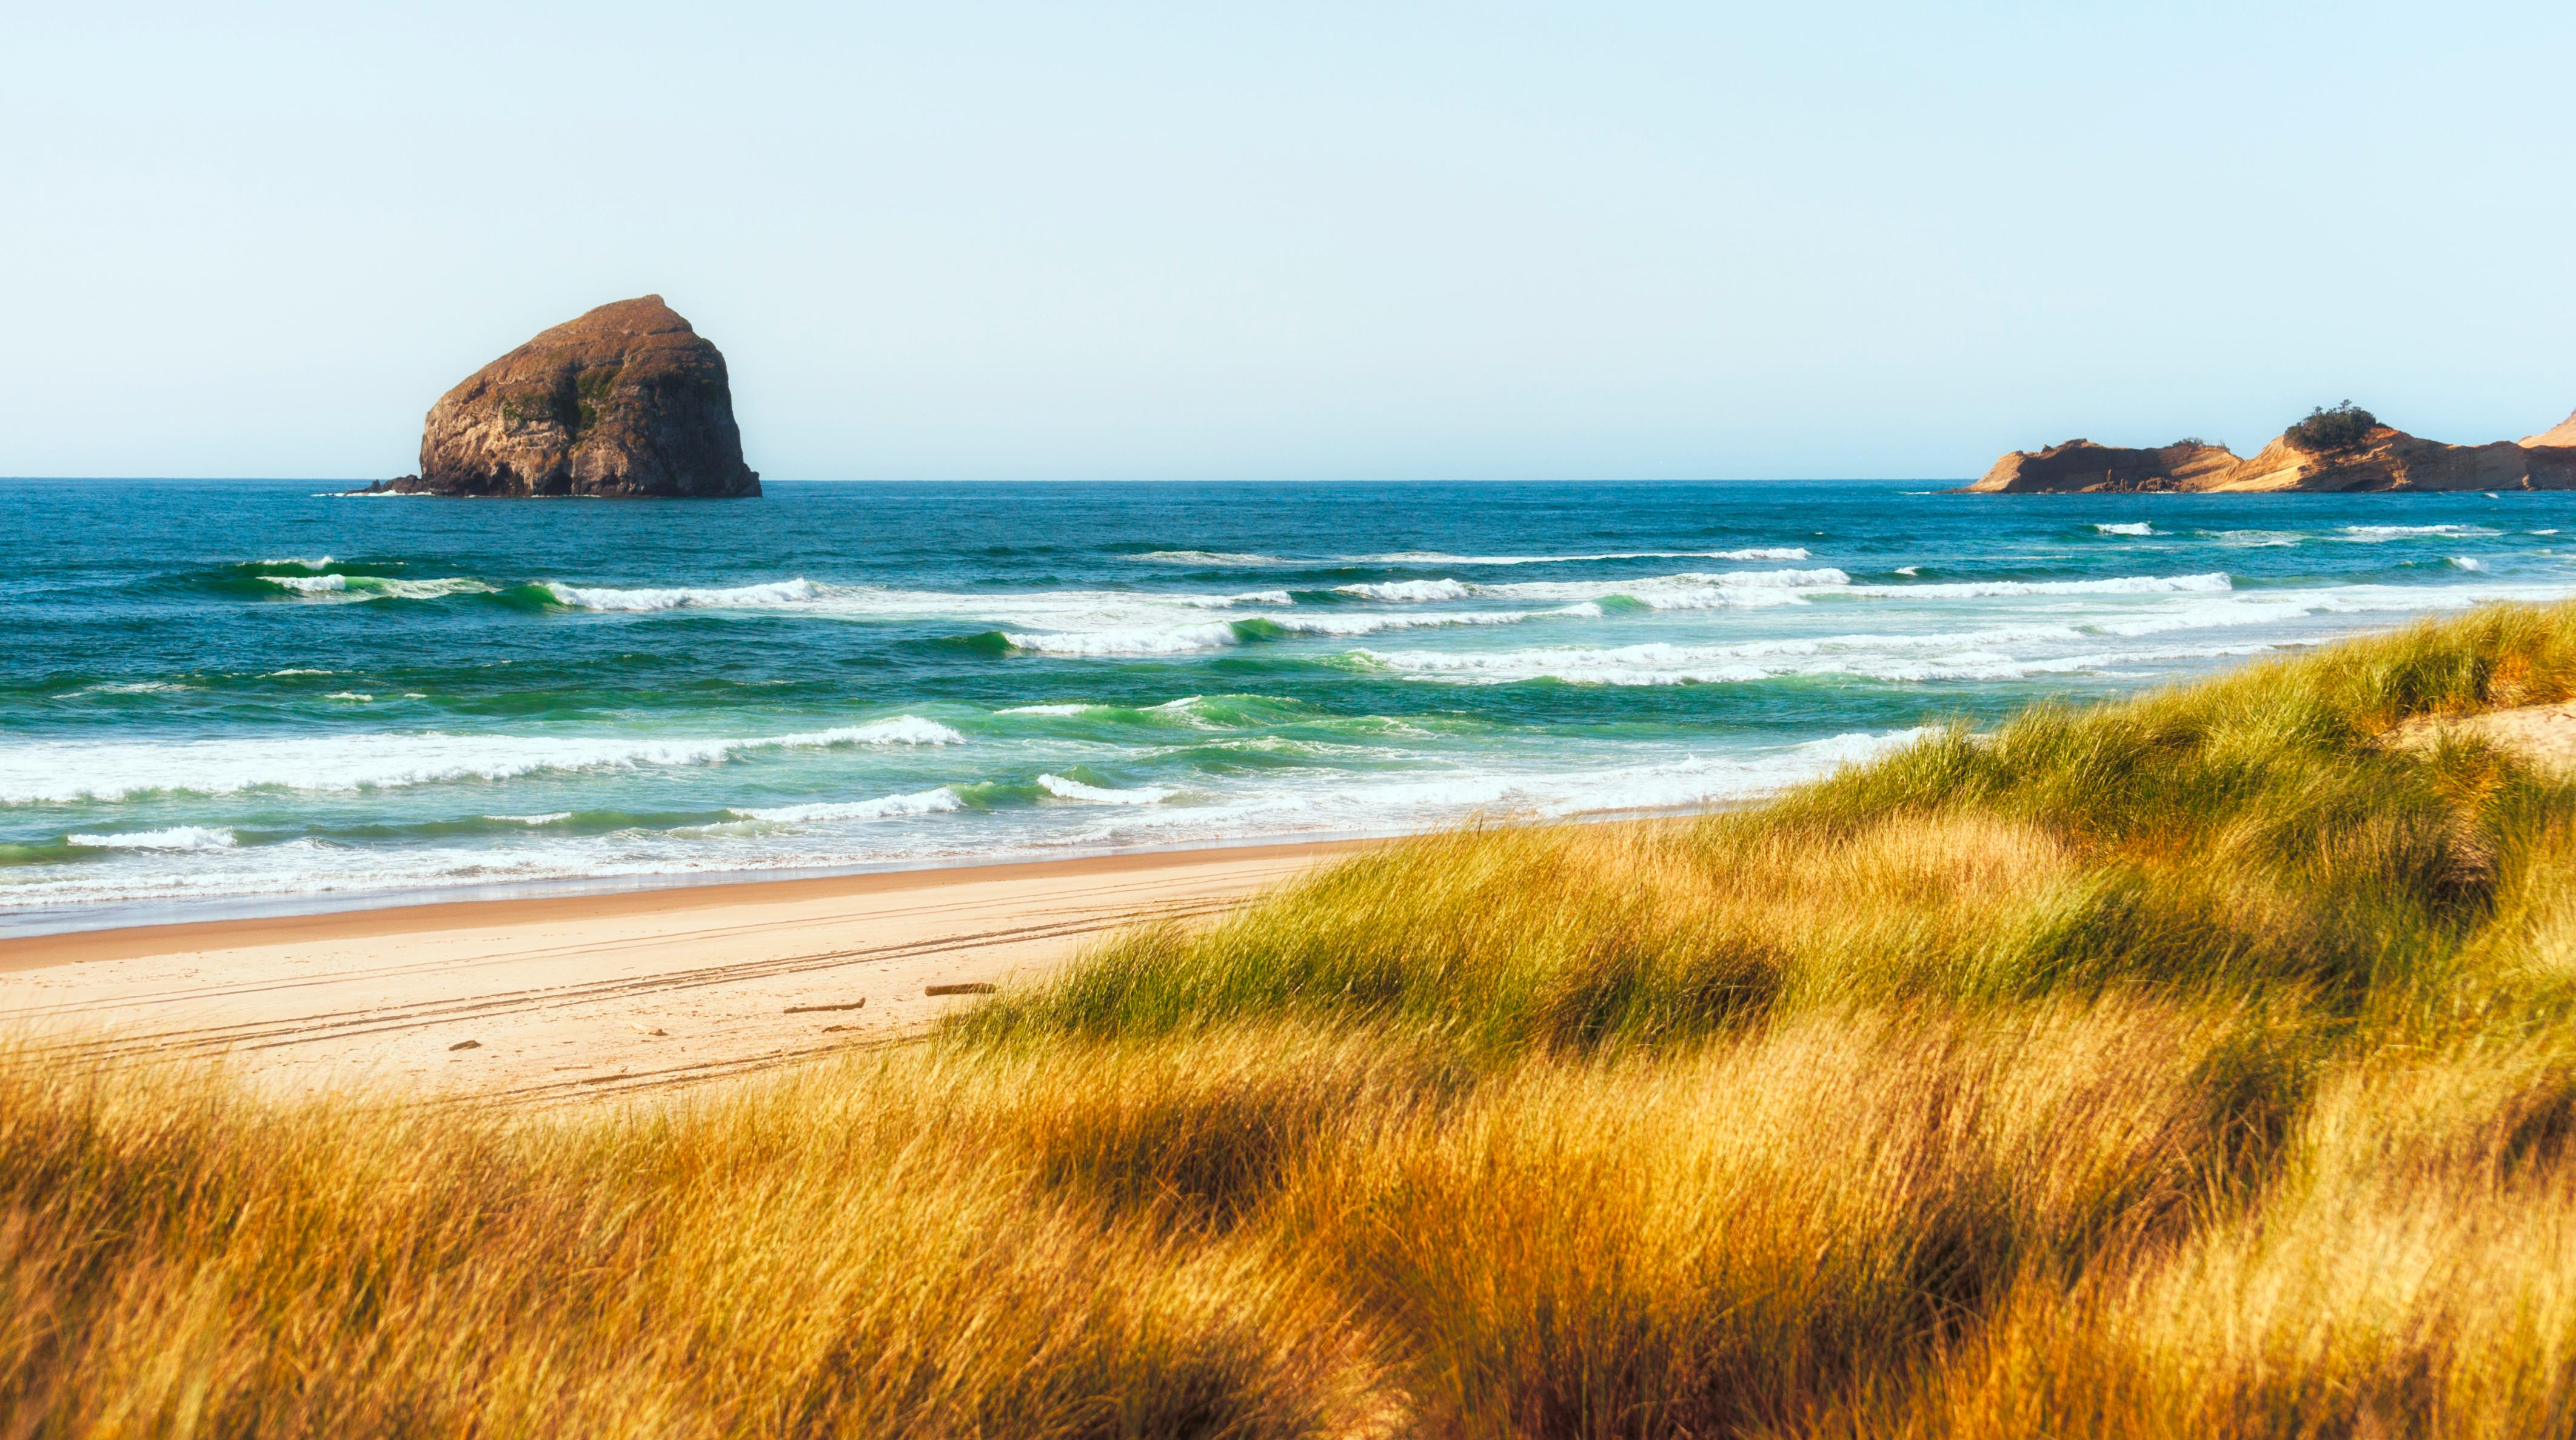 Cape Kiwanda State Park's trails, fishing spots, and beaches are right in your backyard.